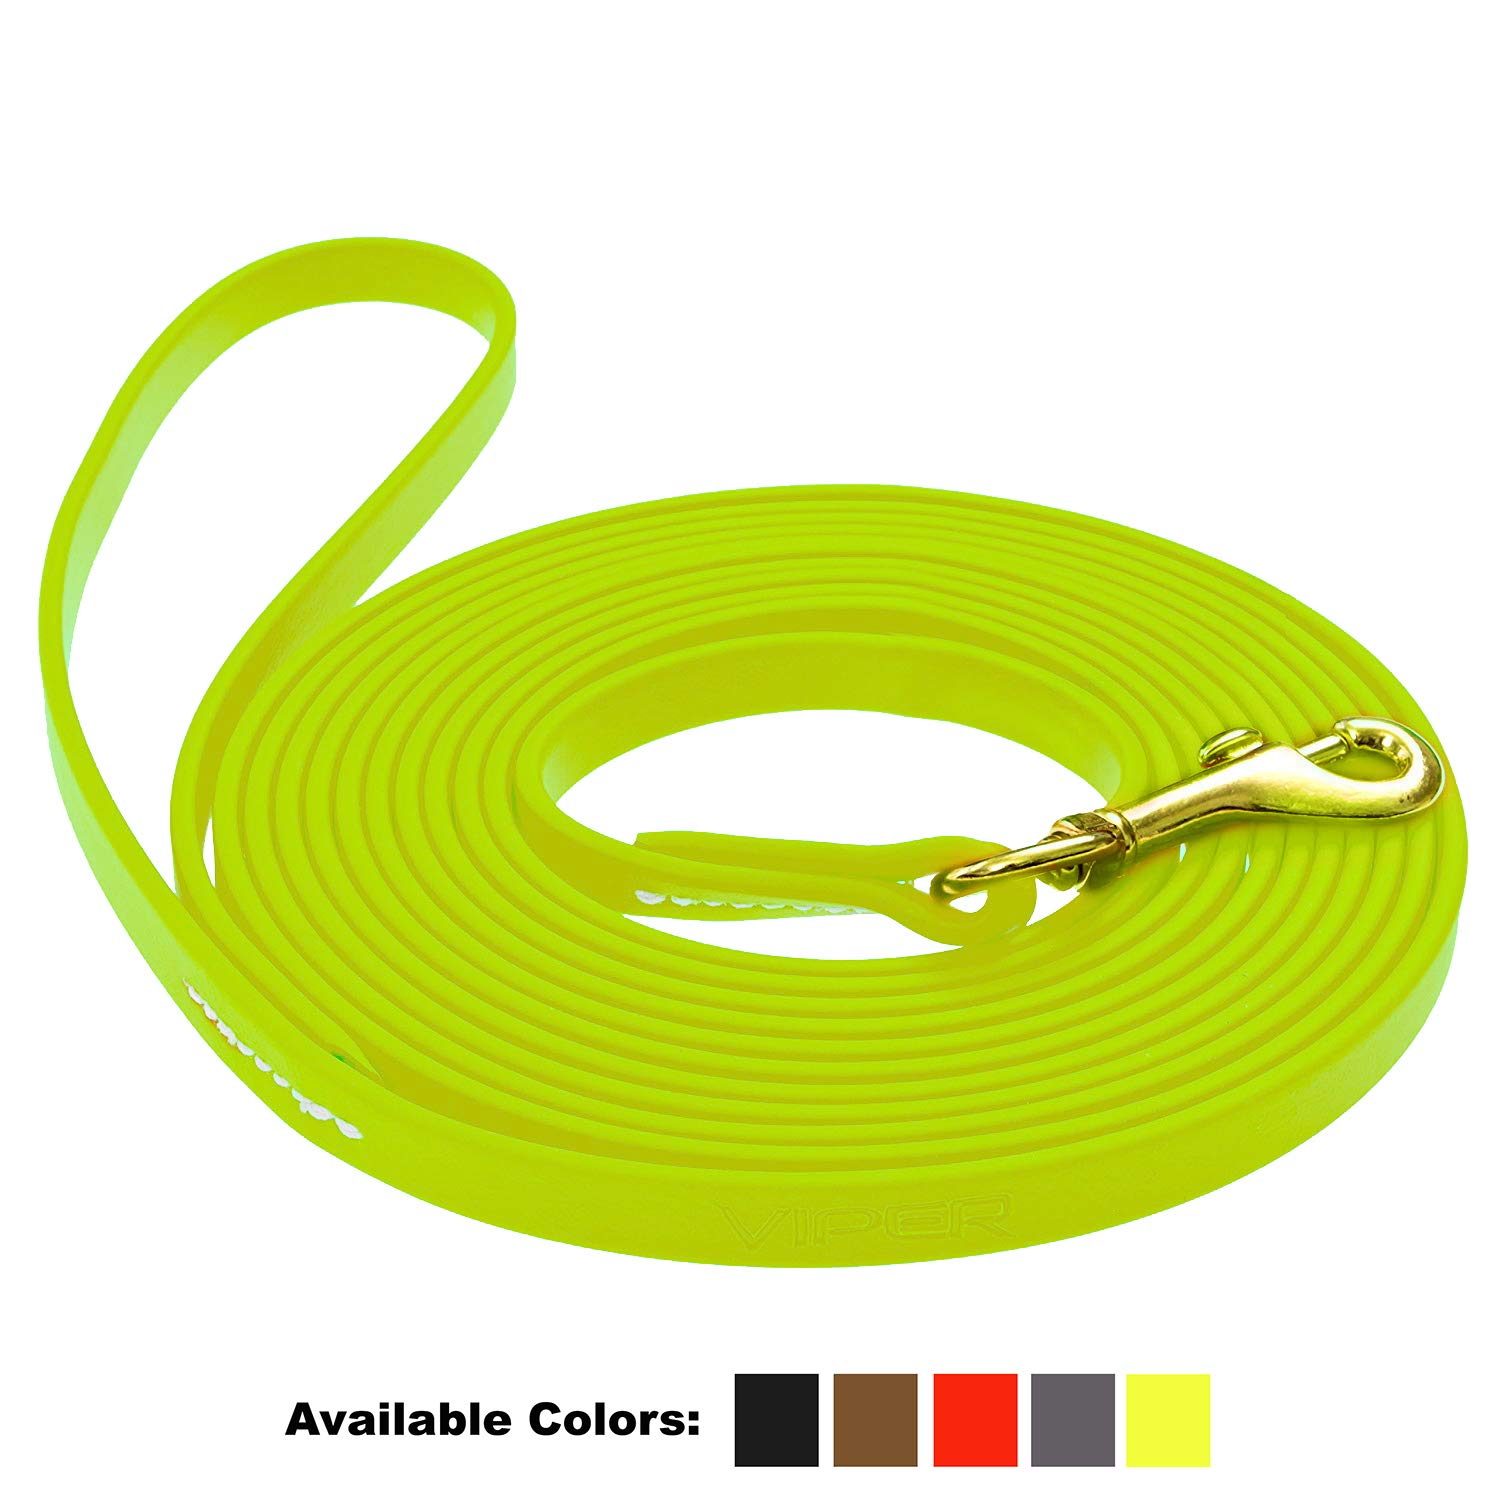 Viper Biothane K9 Working Dog Leash Waterproof Lead for Tracking Training Schutzhund Odor-Proof Long Line with Solid Brass Snap for Puppy Medium and Large Dogs 0.5 in Wide by 15 ft Long Neon Yellow by Viper